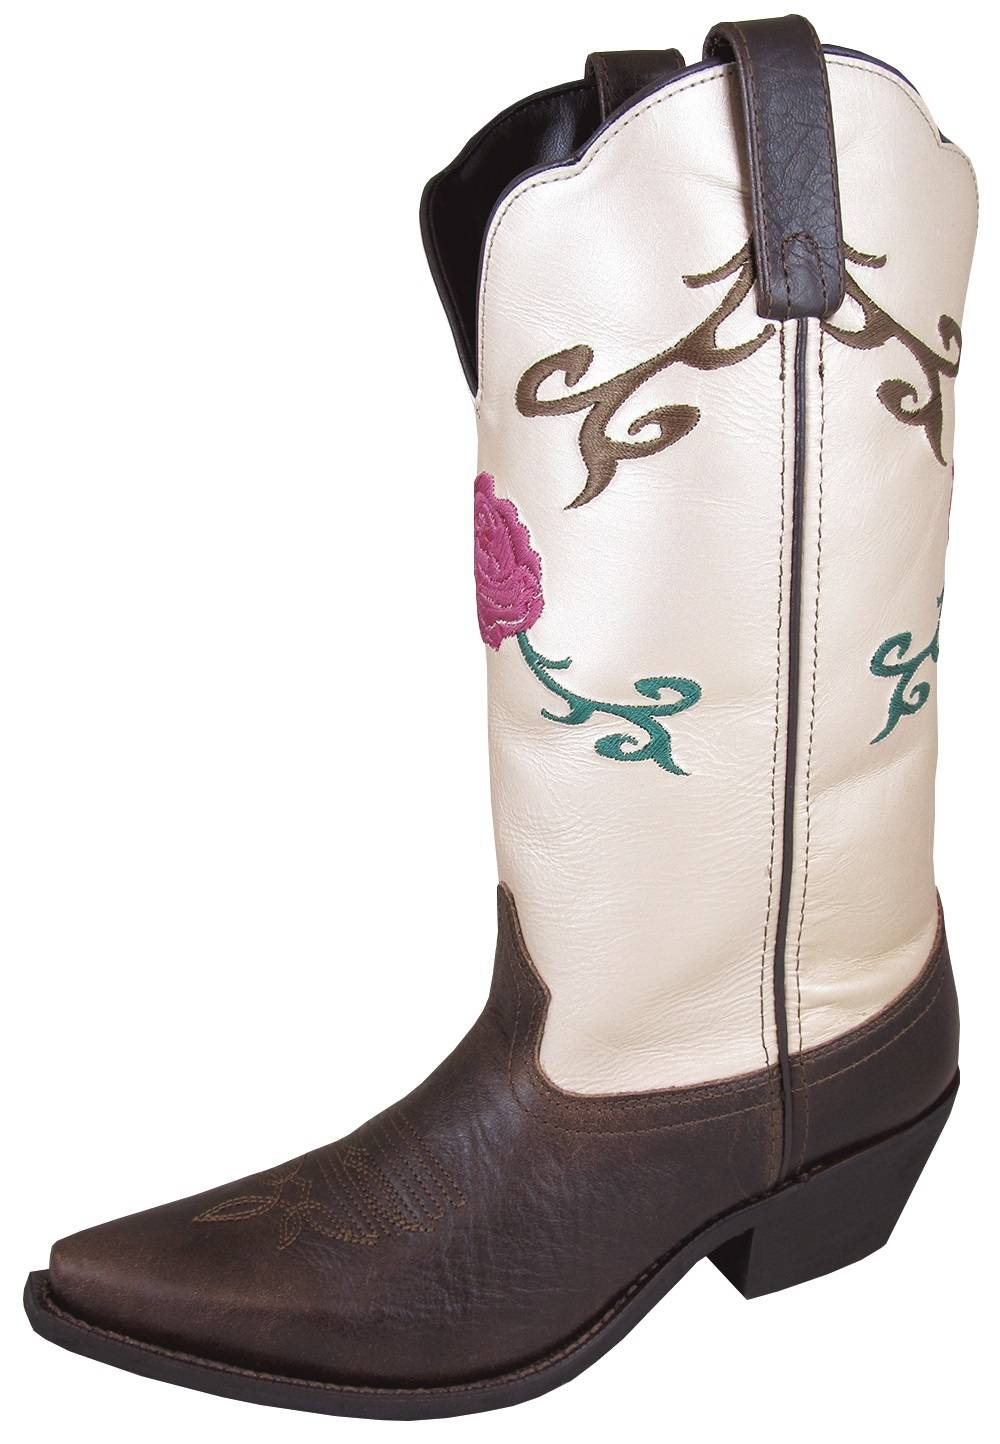 Smoky Mountain Lucky Boots - Ladies - Brown/Cream